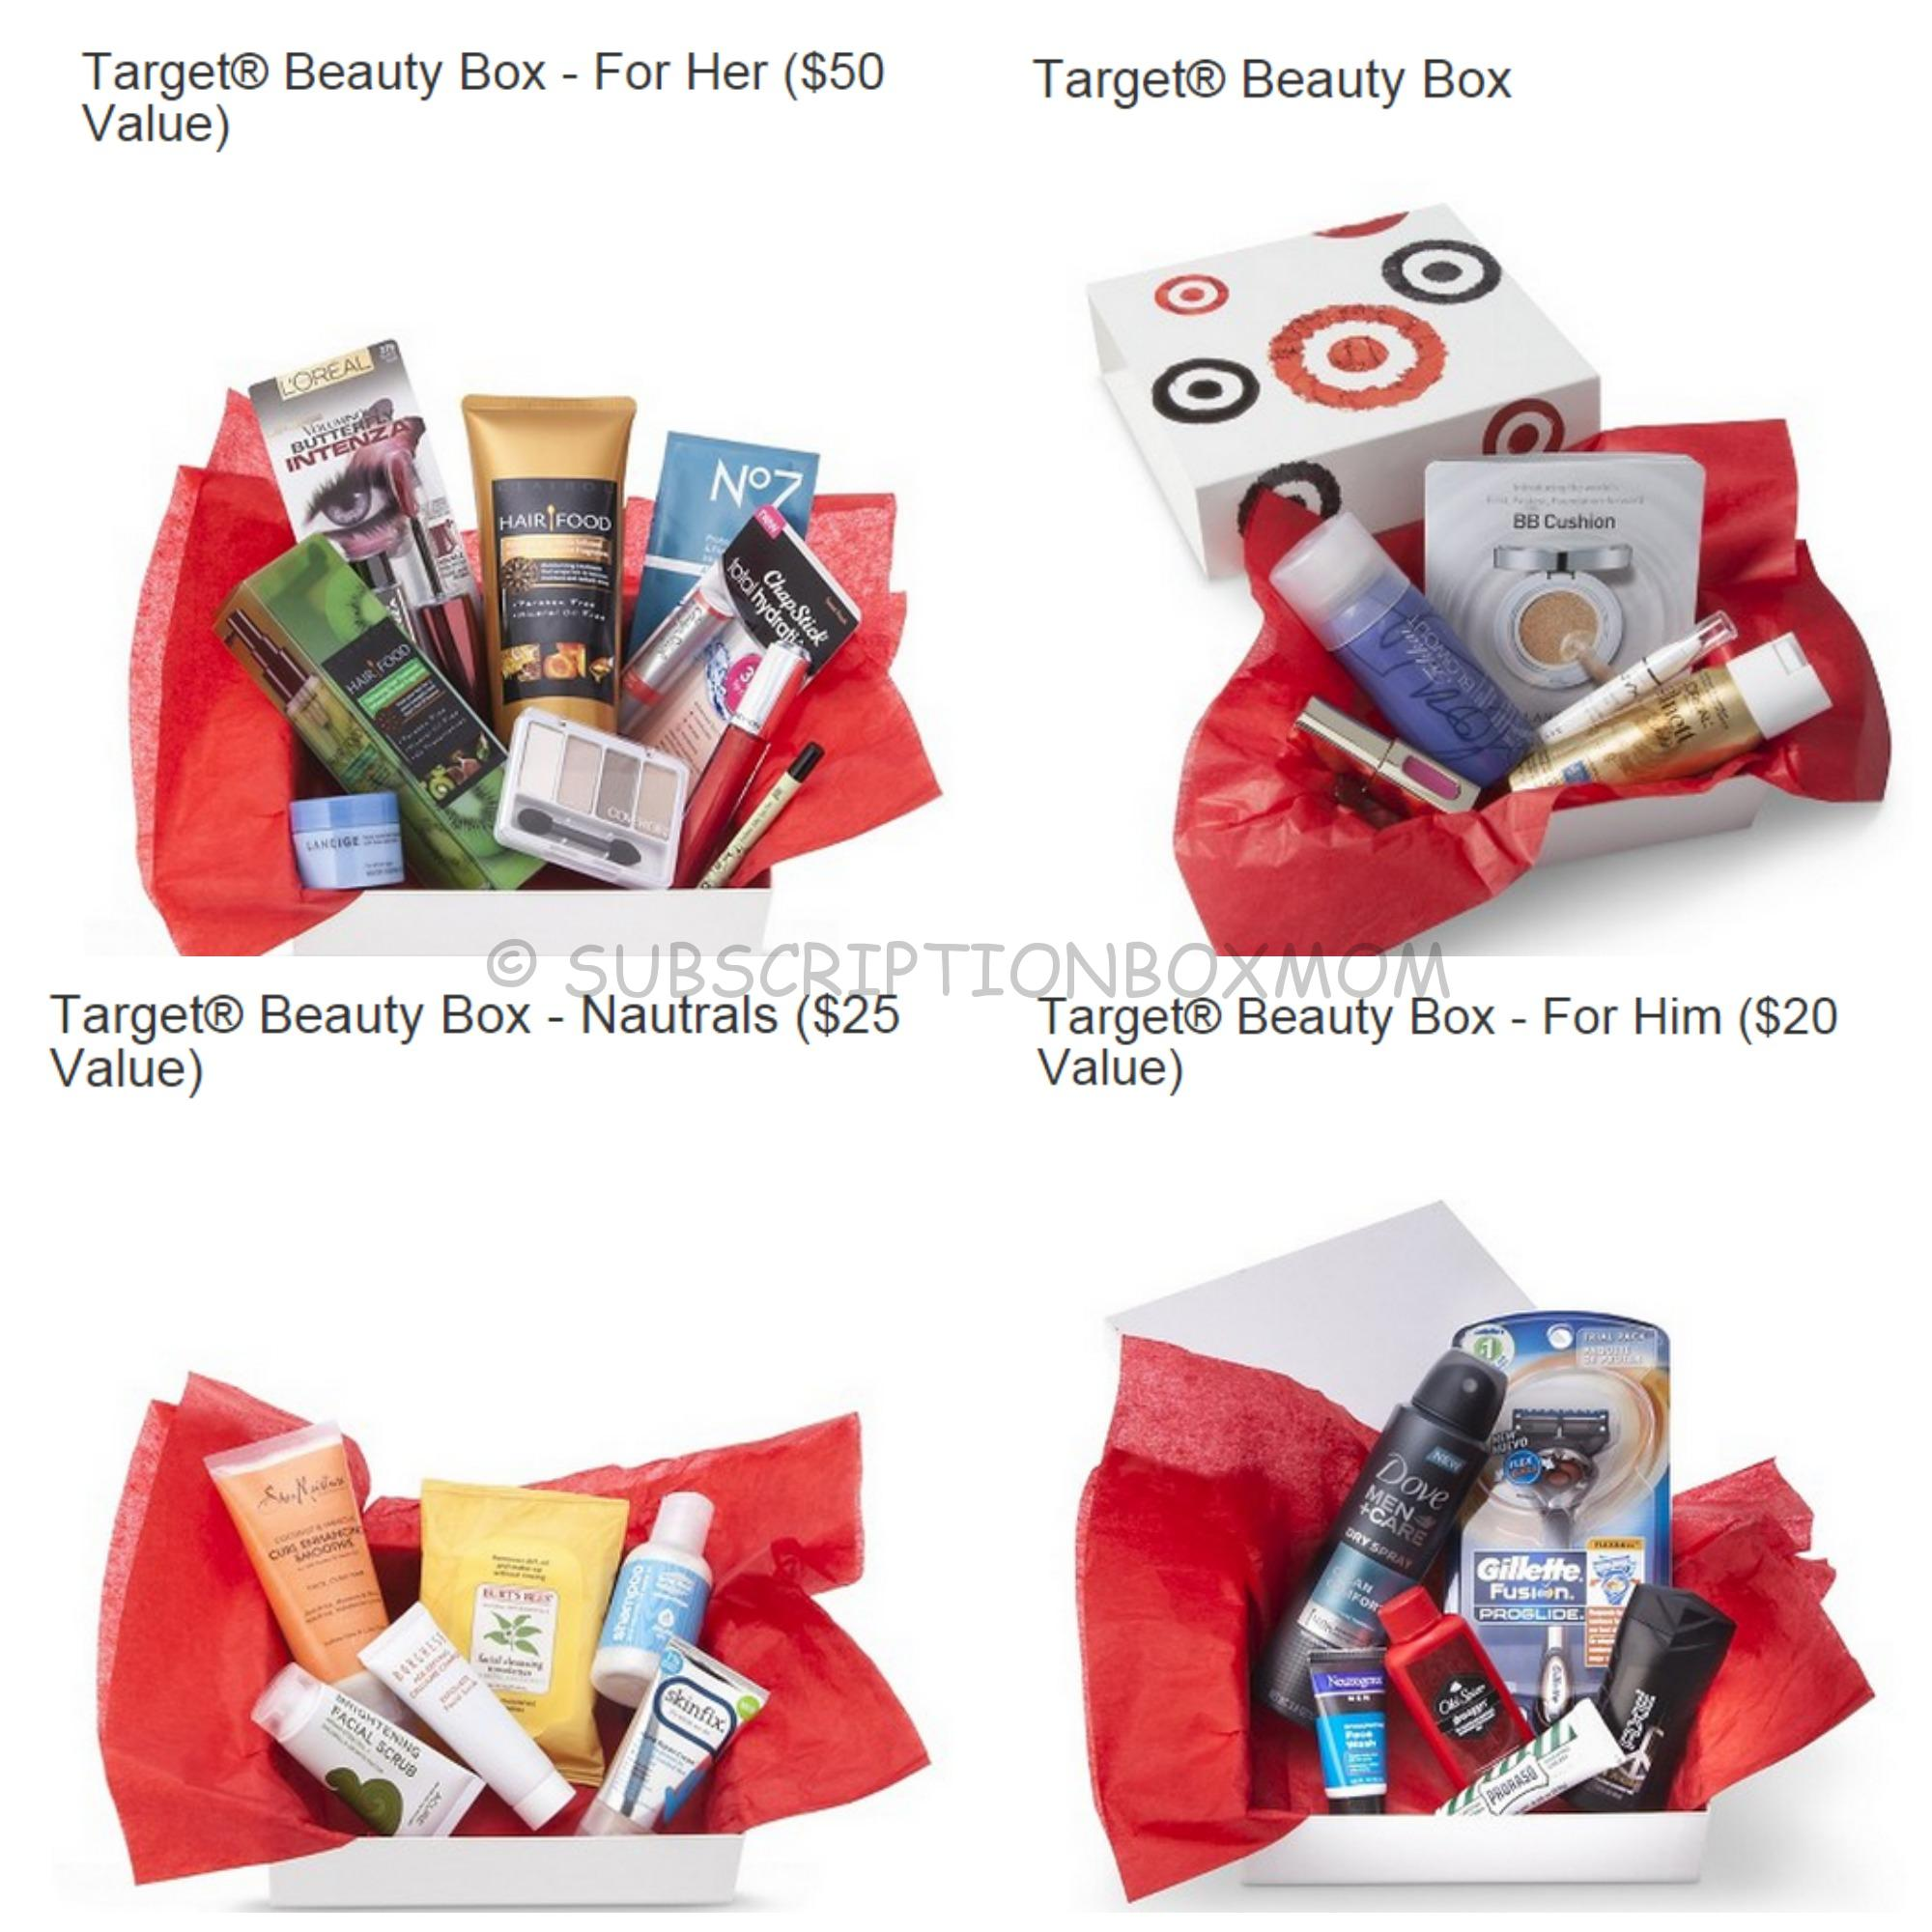 Target Mystery Boxes: Cyber Monday Deal 2014